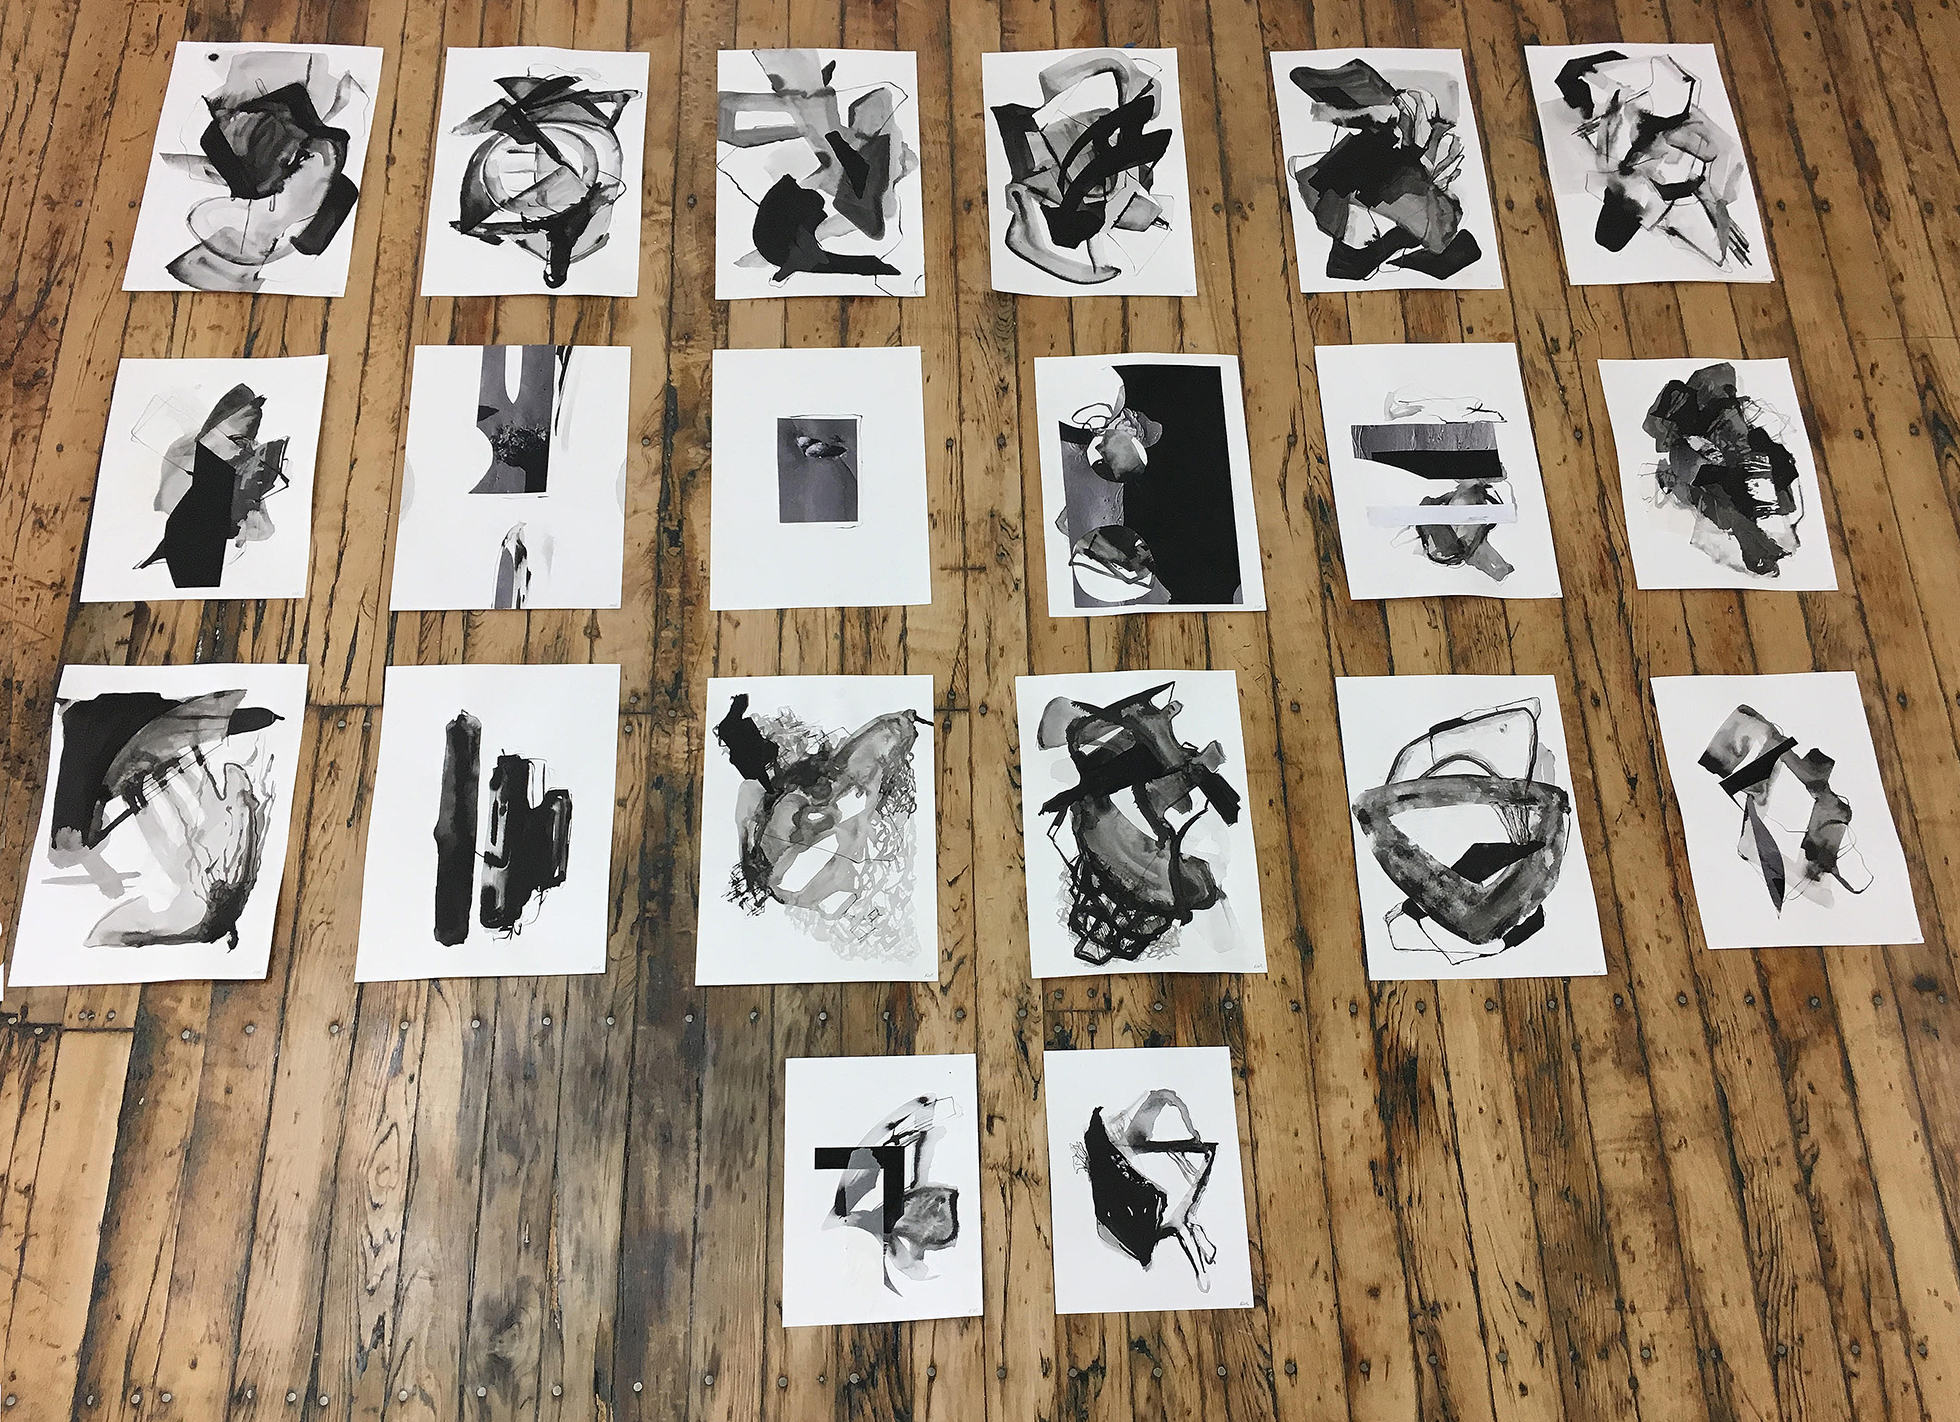 Index cards with abstract images lying on a wooden floor.